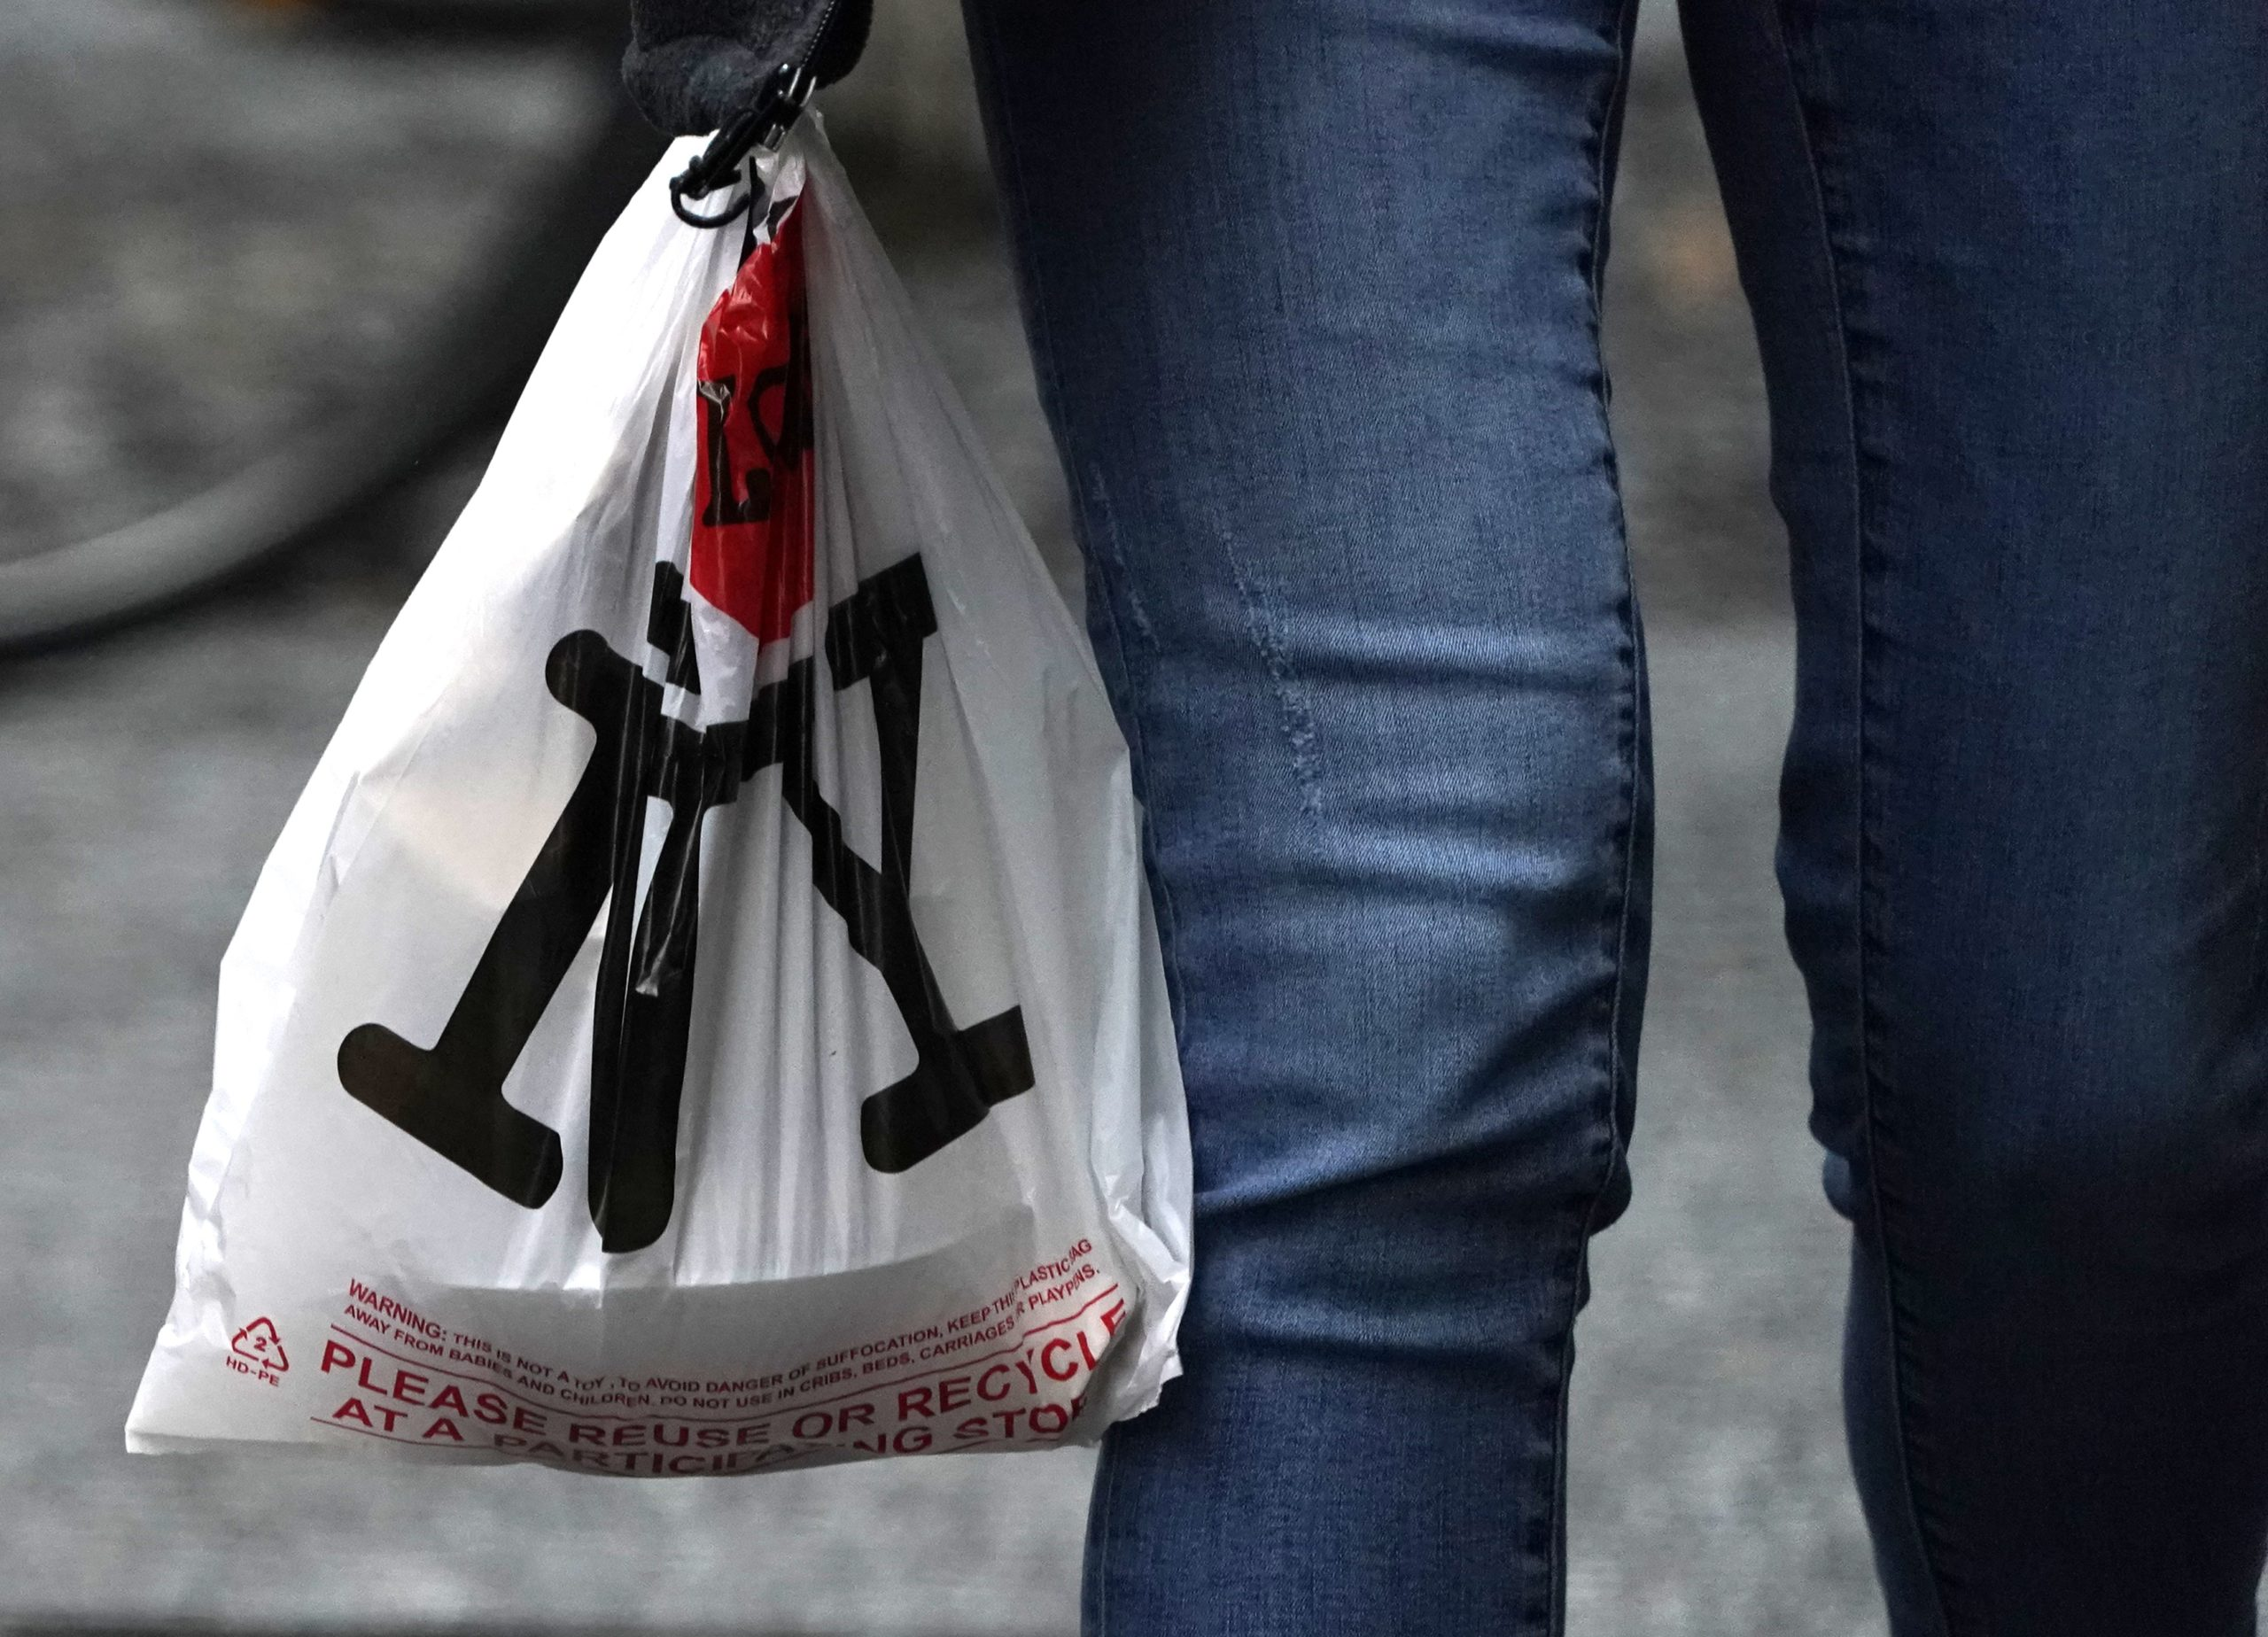 A person with their lunch in a plastic bags walks in midtown in New York on February 28, 2020, ahead of the statewide ban on plastic bags that takes effect March 1. - Consumerist mecca New York targets its throwaway culture this weekend with a ban on single-use plastic bags that has been years in the making and is still rare in America. New Yorkers like to see themselves at the forefront of efforts to save the environment but have become used to receiving groceries in free poly bags often doubled for solidity. On Sunday, that will change when New York becomes only the third US state to outlaw the non-biodegradable carriers blamed for choking rivers, littering neighborhoods and suffocating wildlife. (Photo by TIMOTHY A. CLARY / AFP) (Photo by TIMOTHY A. CLARY/AFP via Getty Images)